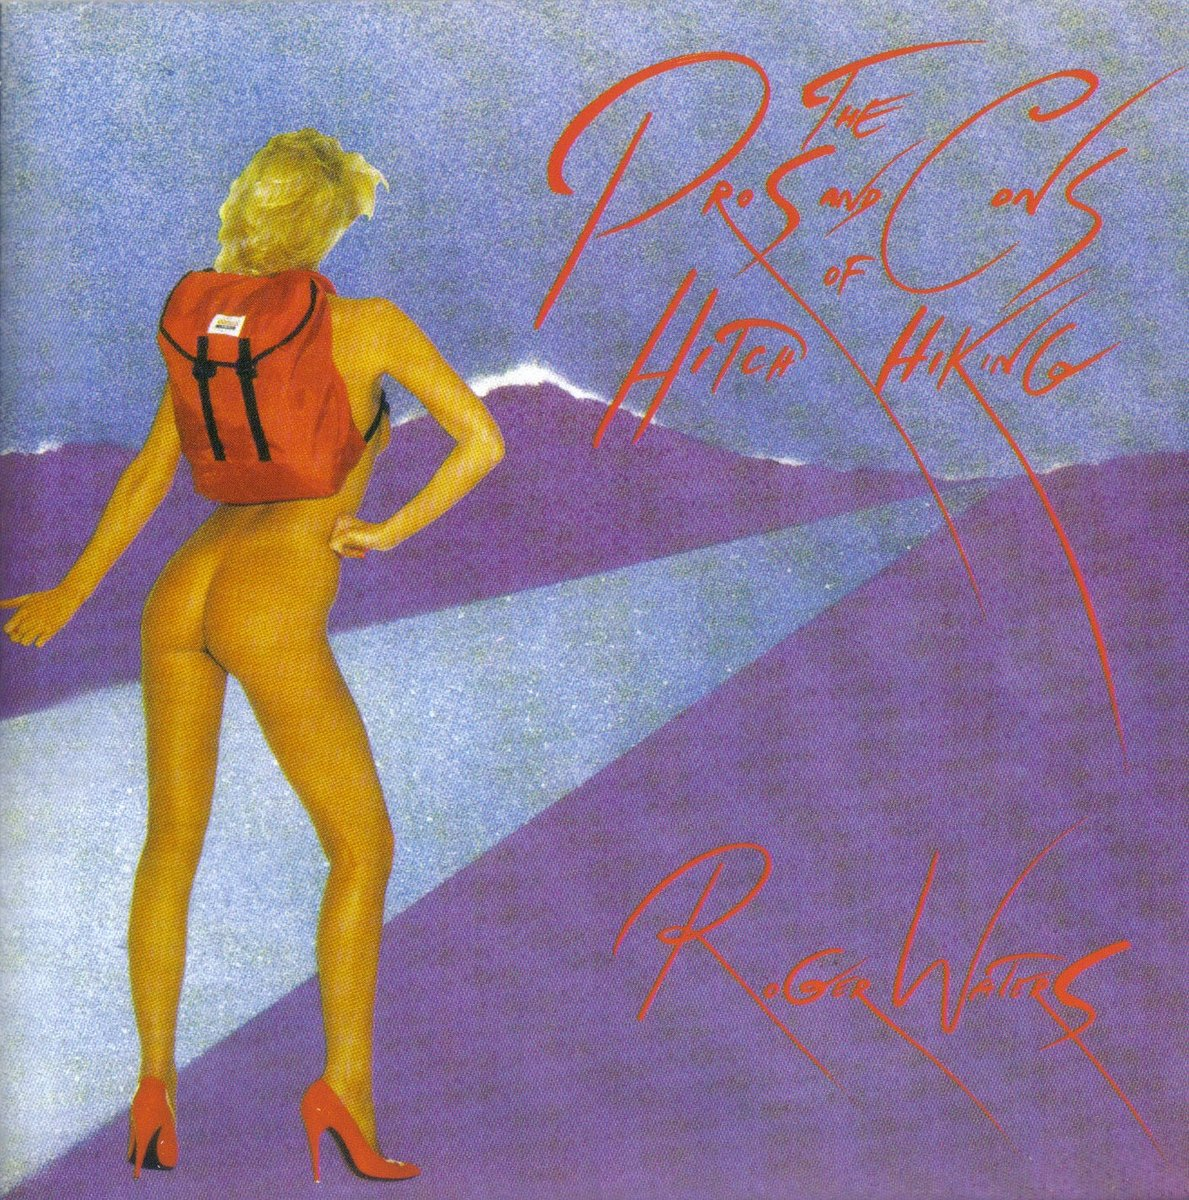 Roger Waters - The Pros And Cons Of Hitch Hiking - Cover Front.jpg